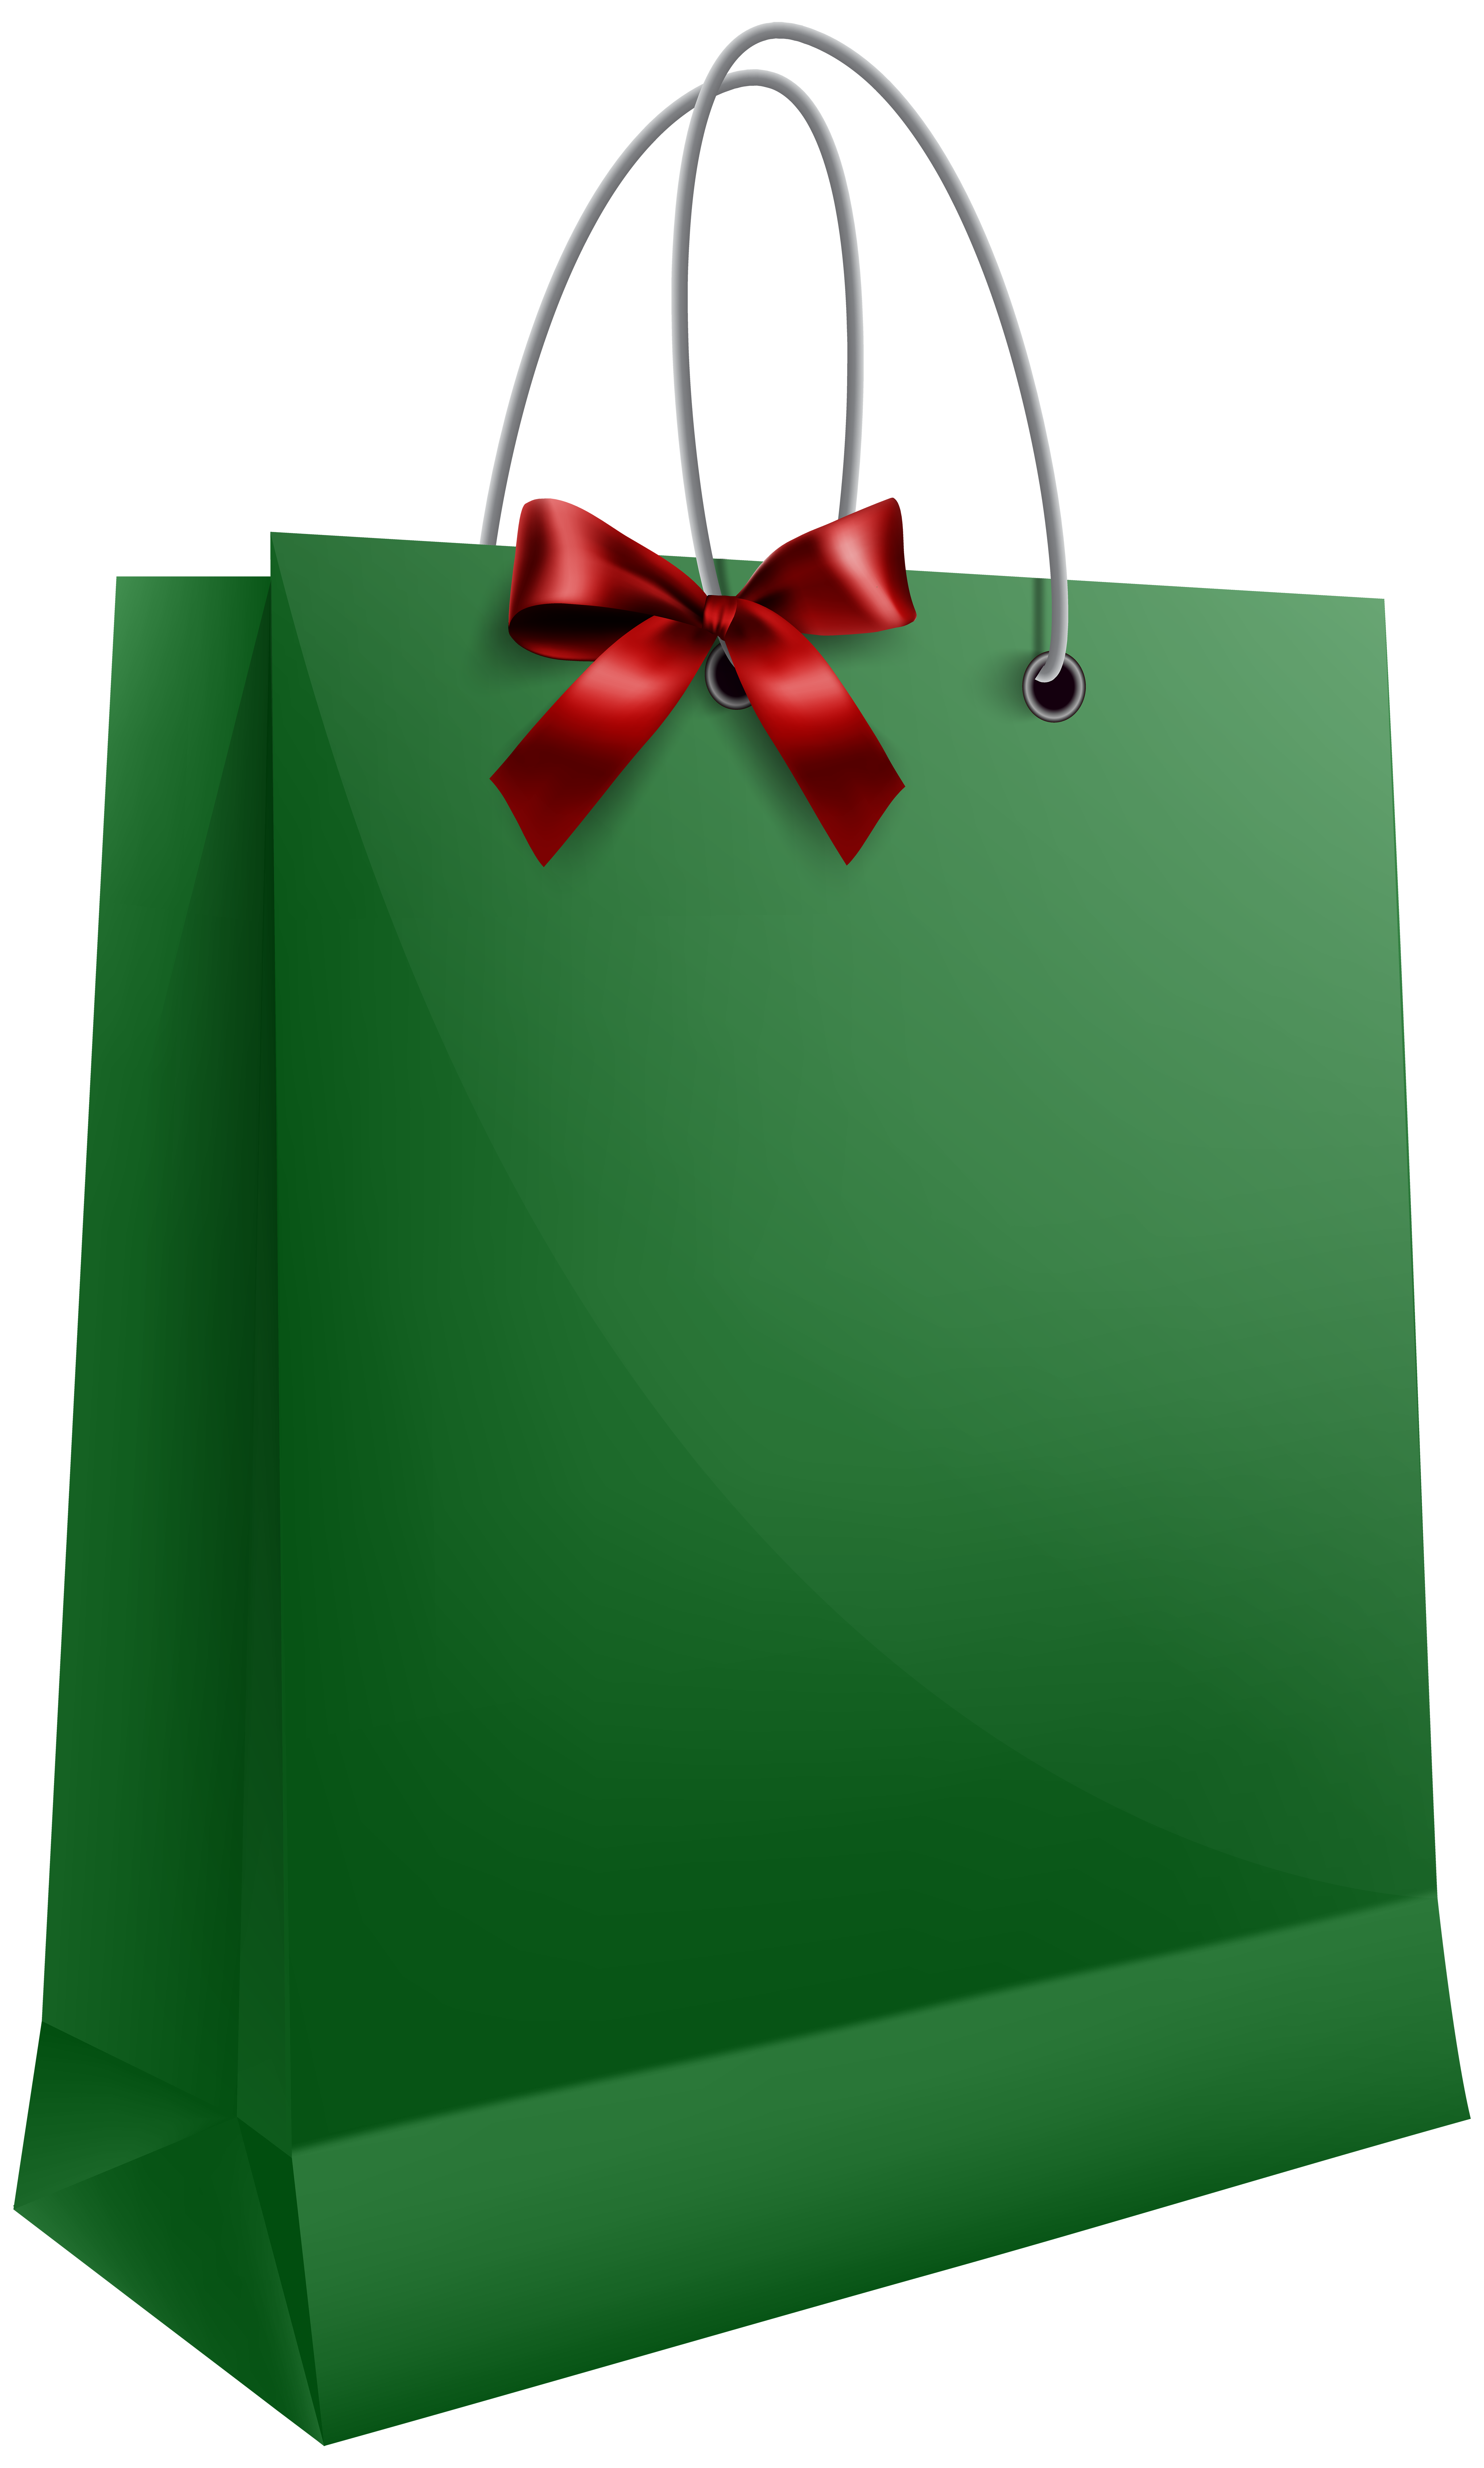 Green Gift Bag with Bow PNG Clip Art Image.